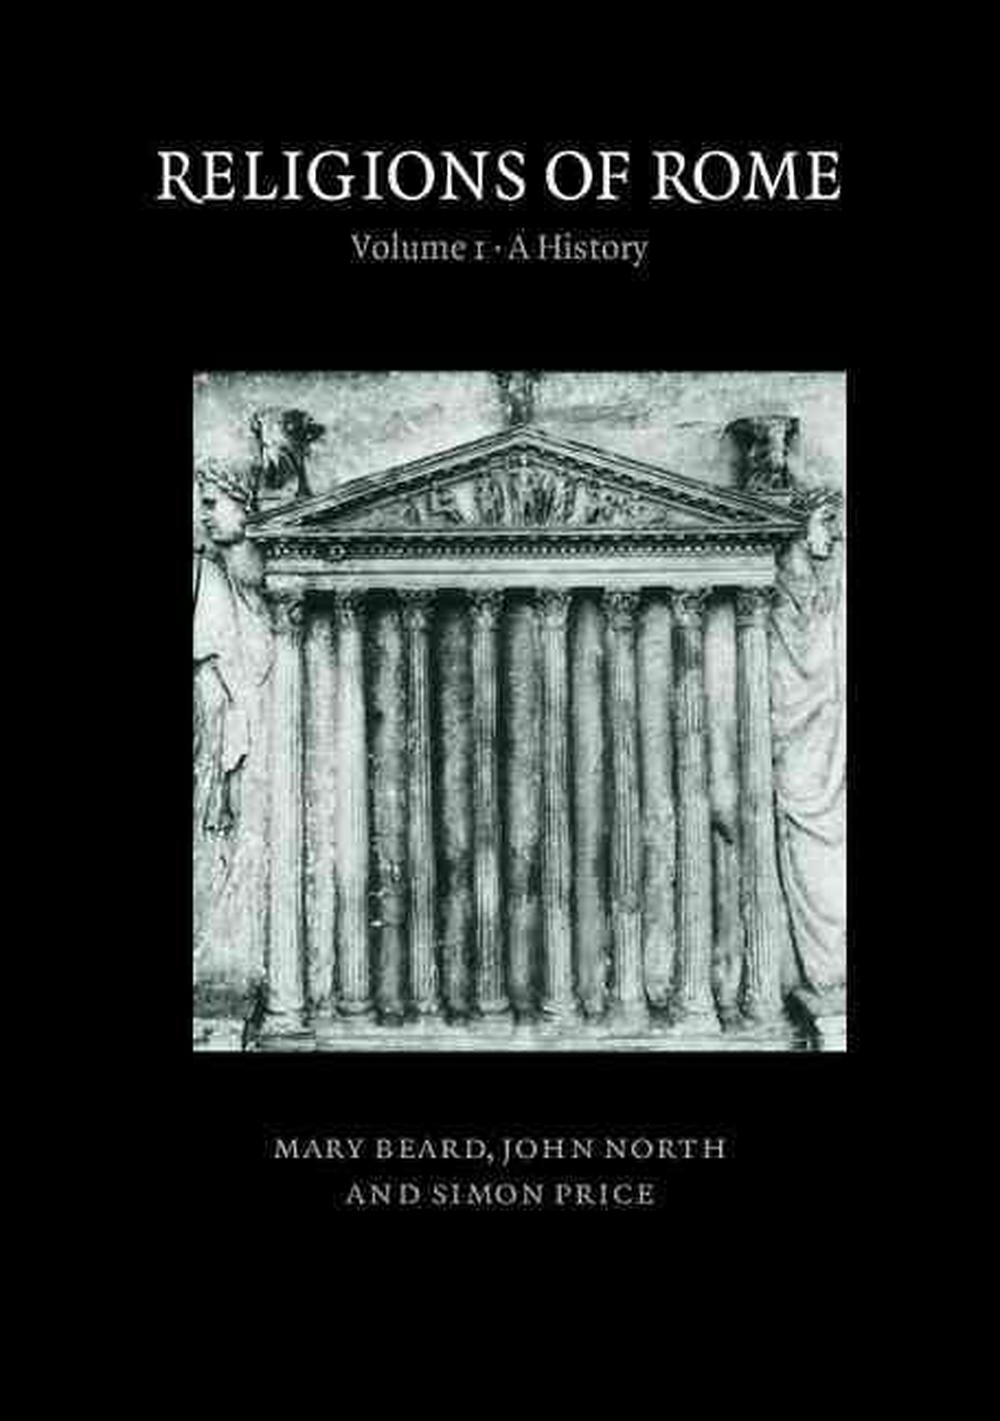 Religions of Rome: Volume 1, A History: History v. 1